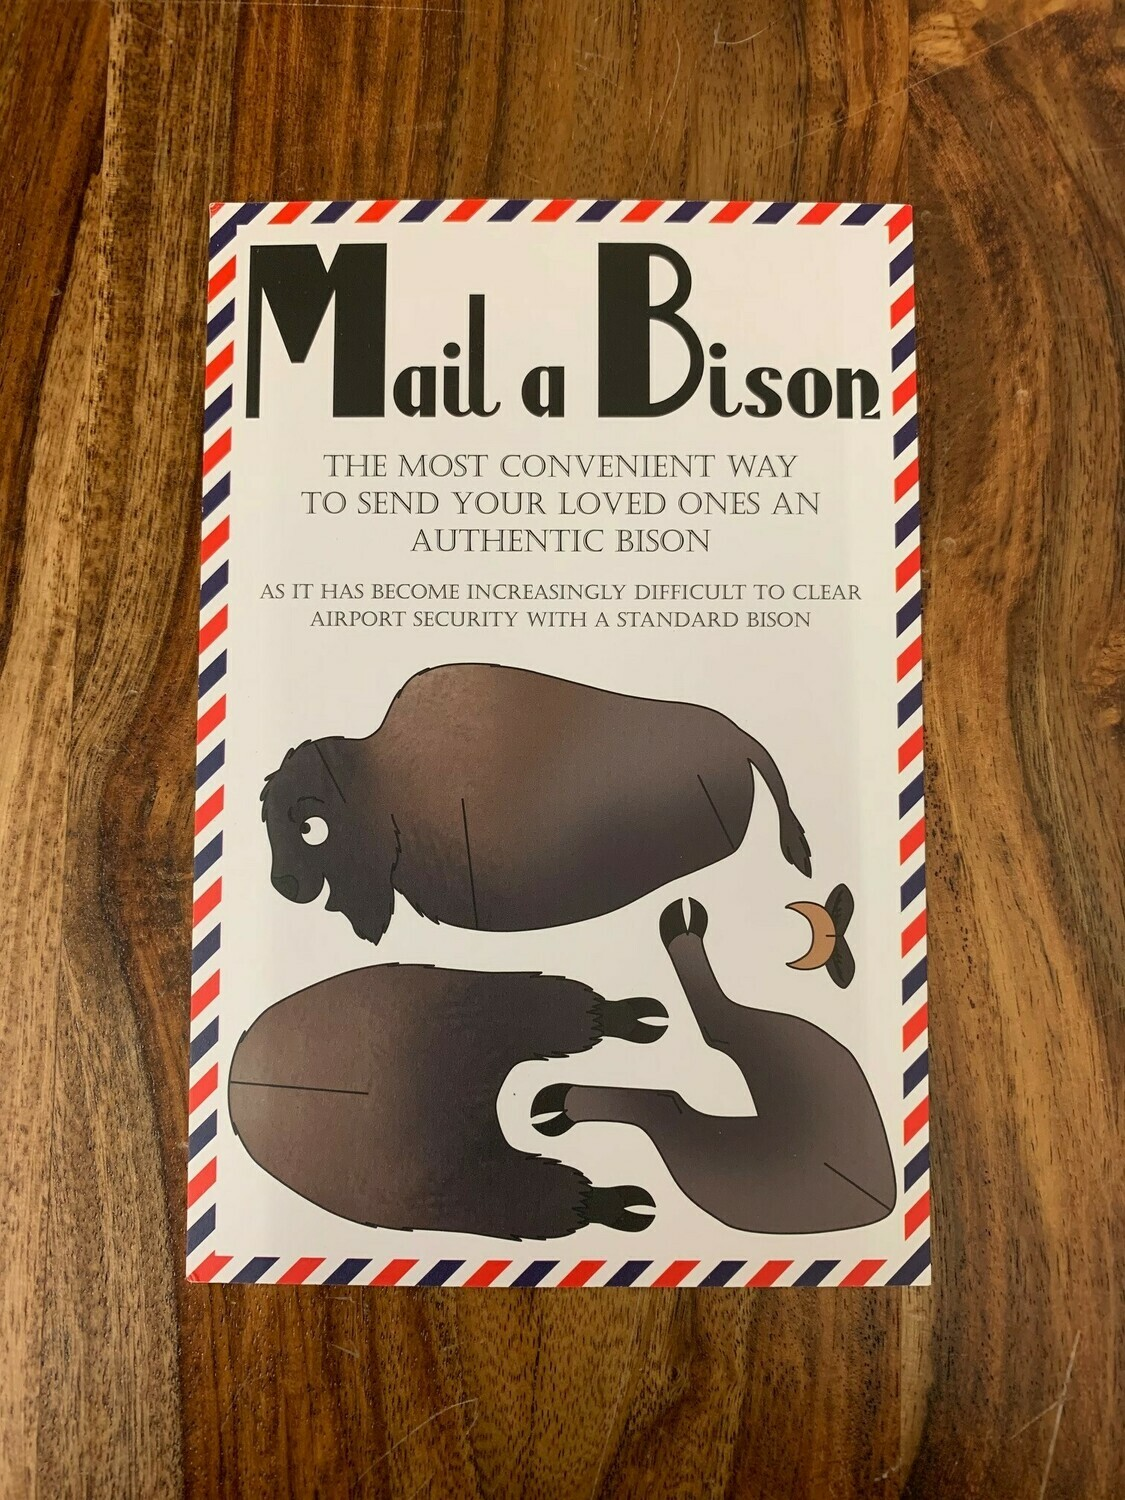 Mail-a-Bison Postcard